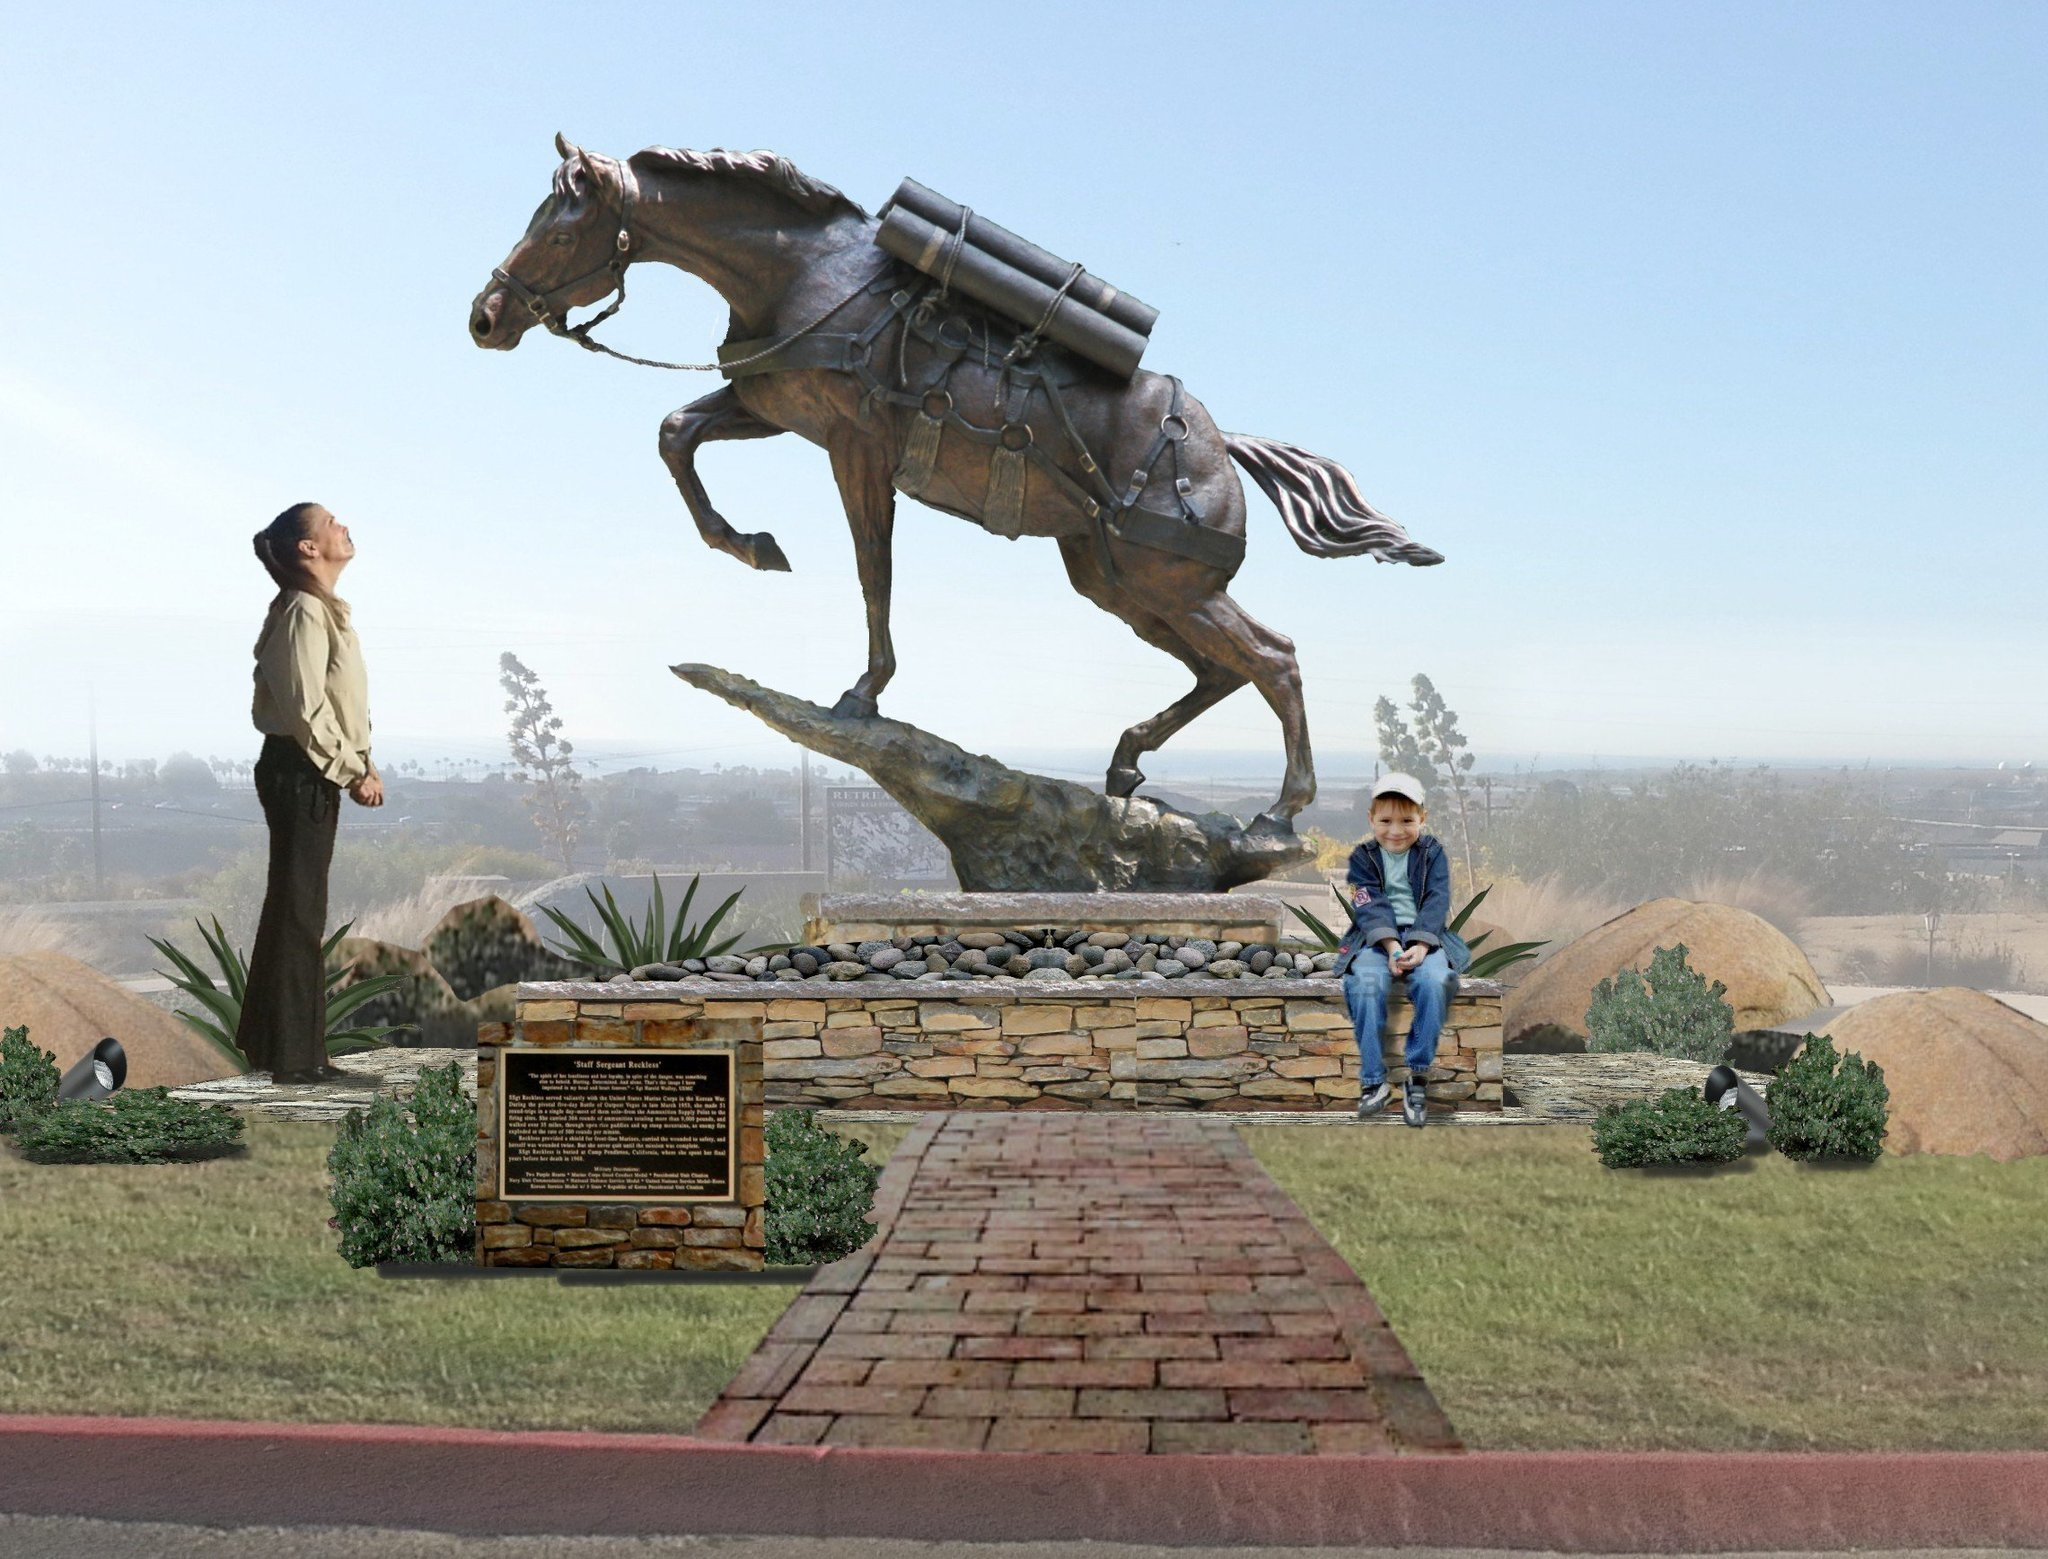 Statue of heroic war horse to go up at Pendleton - The San Diego  Union-Tribune